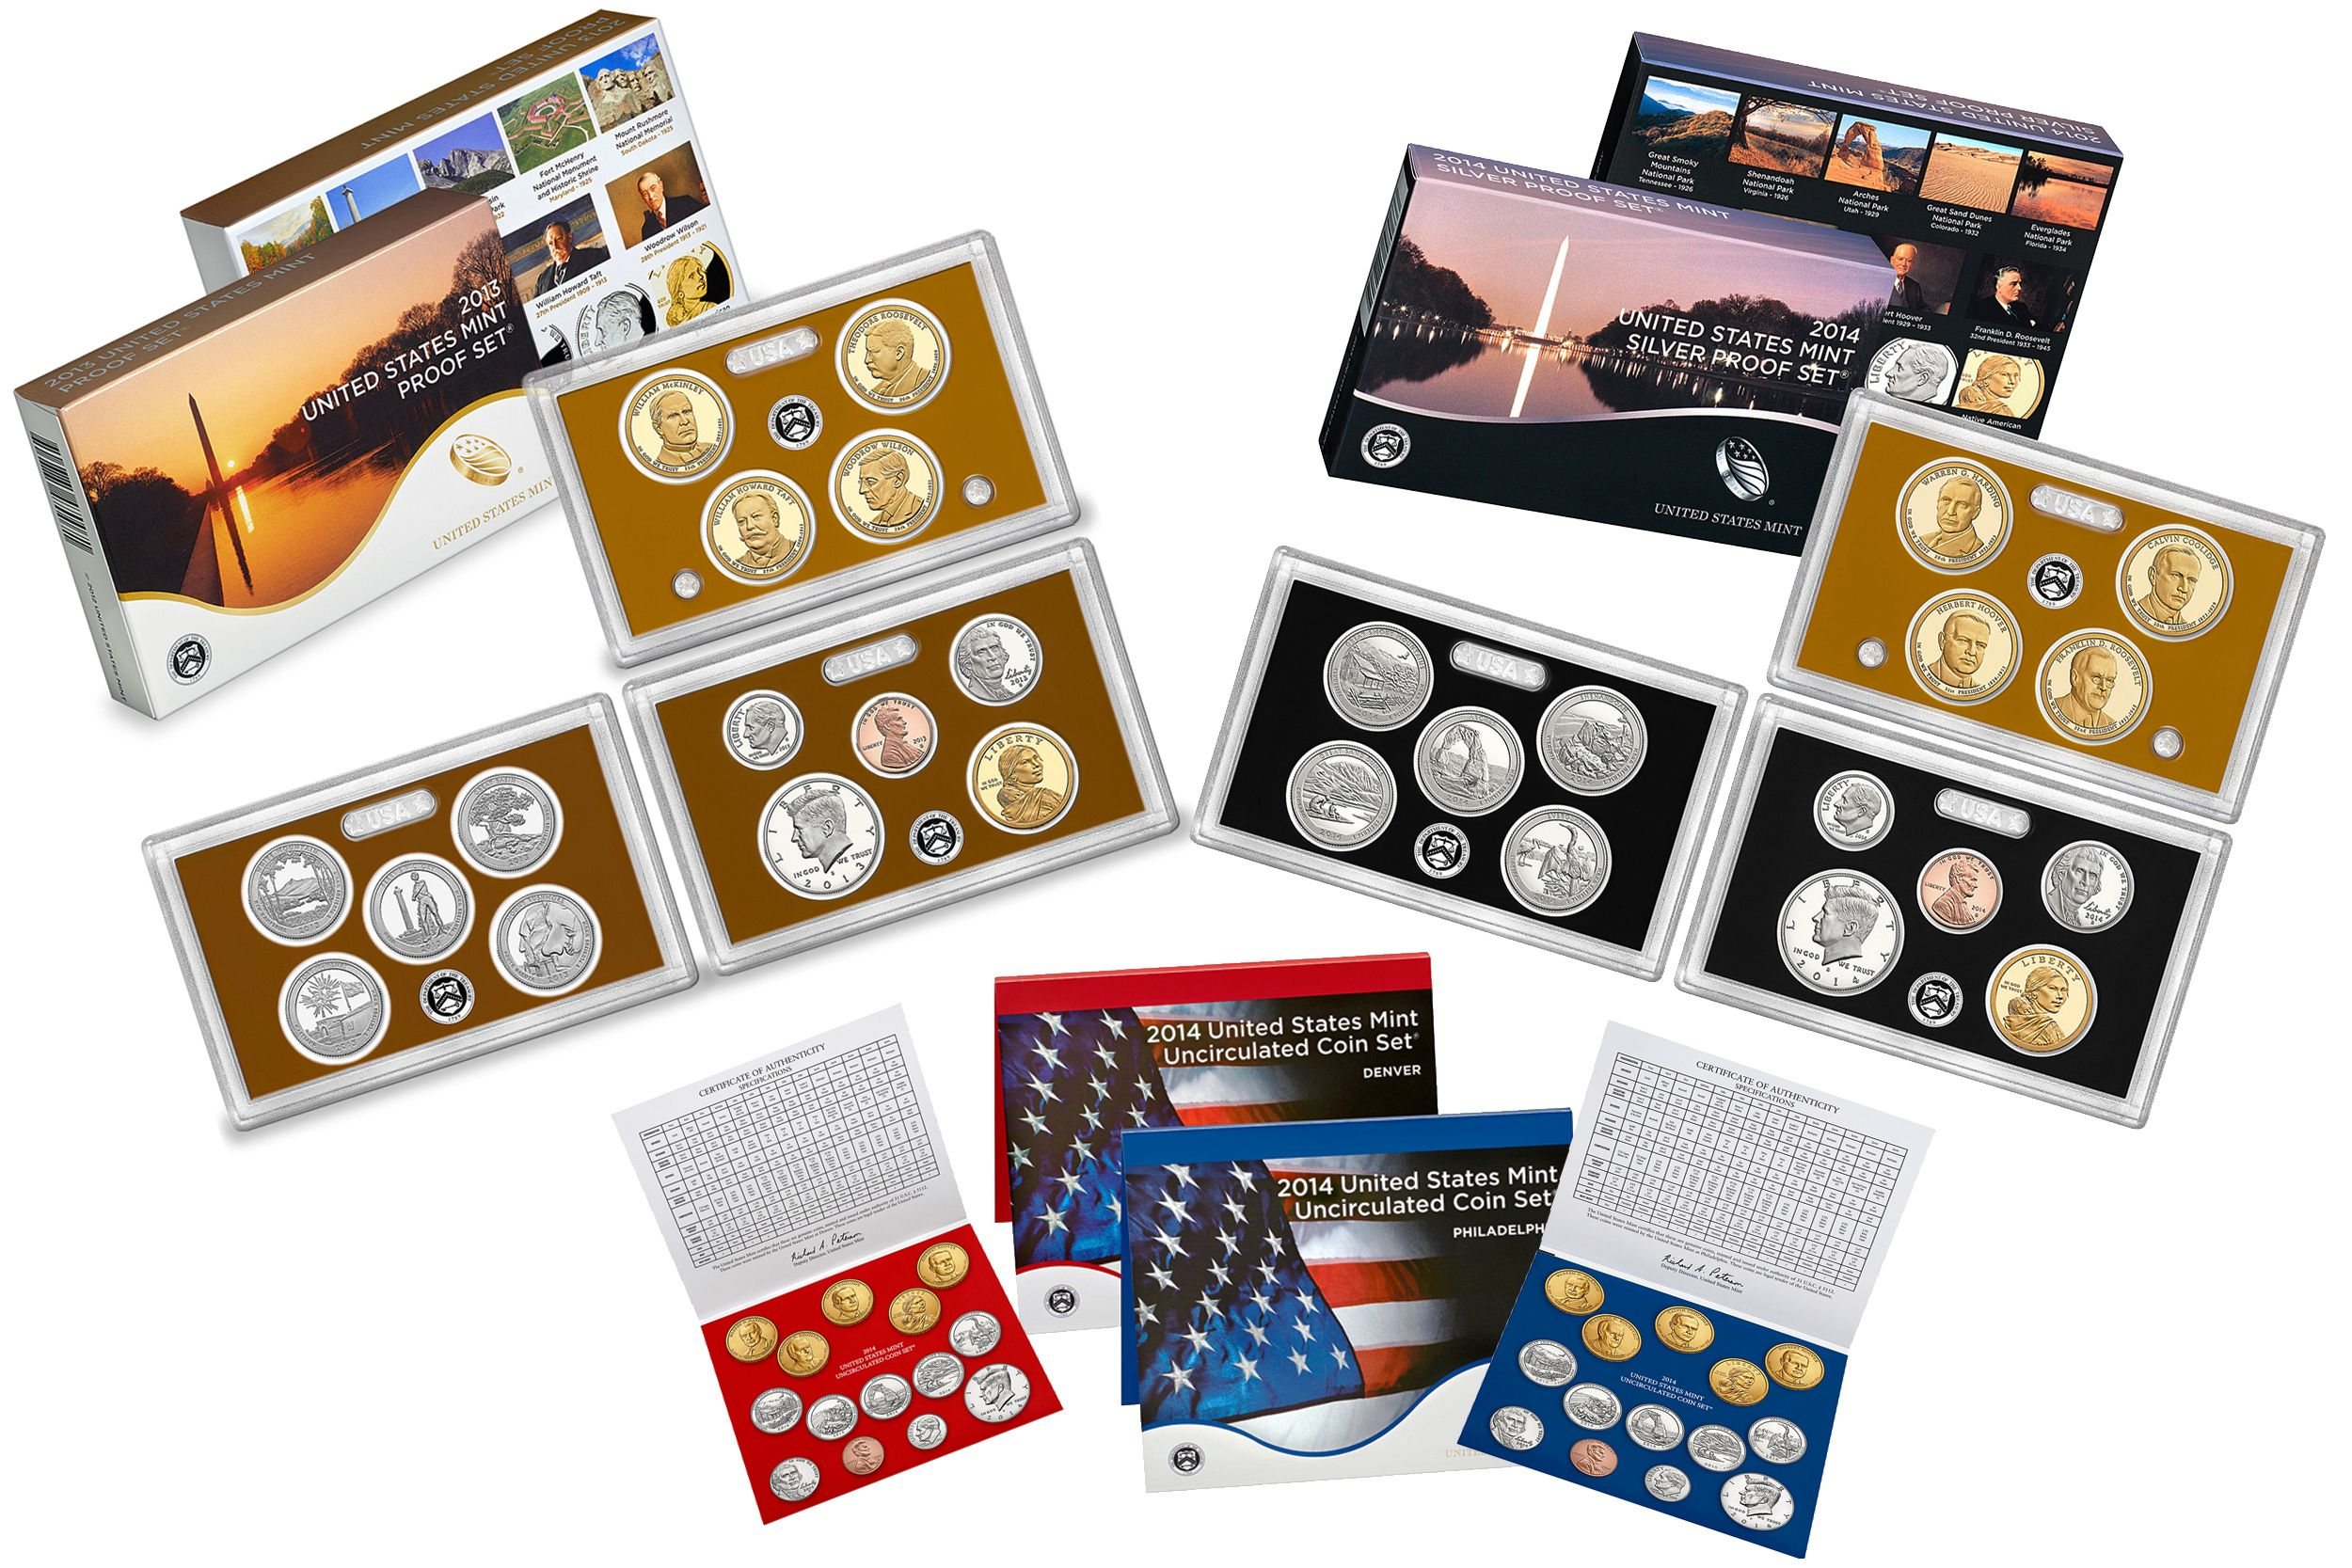 2014 United States Proof and Uncirculated Mint Sets